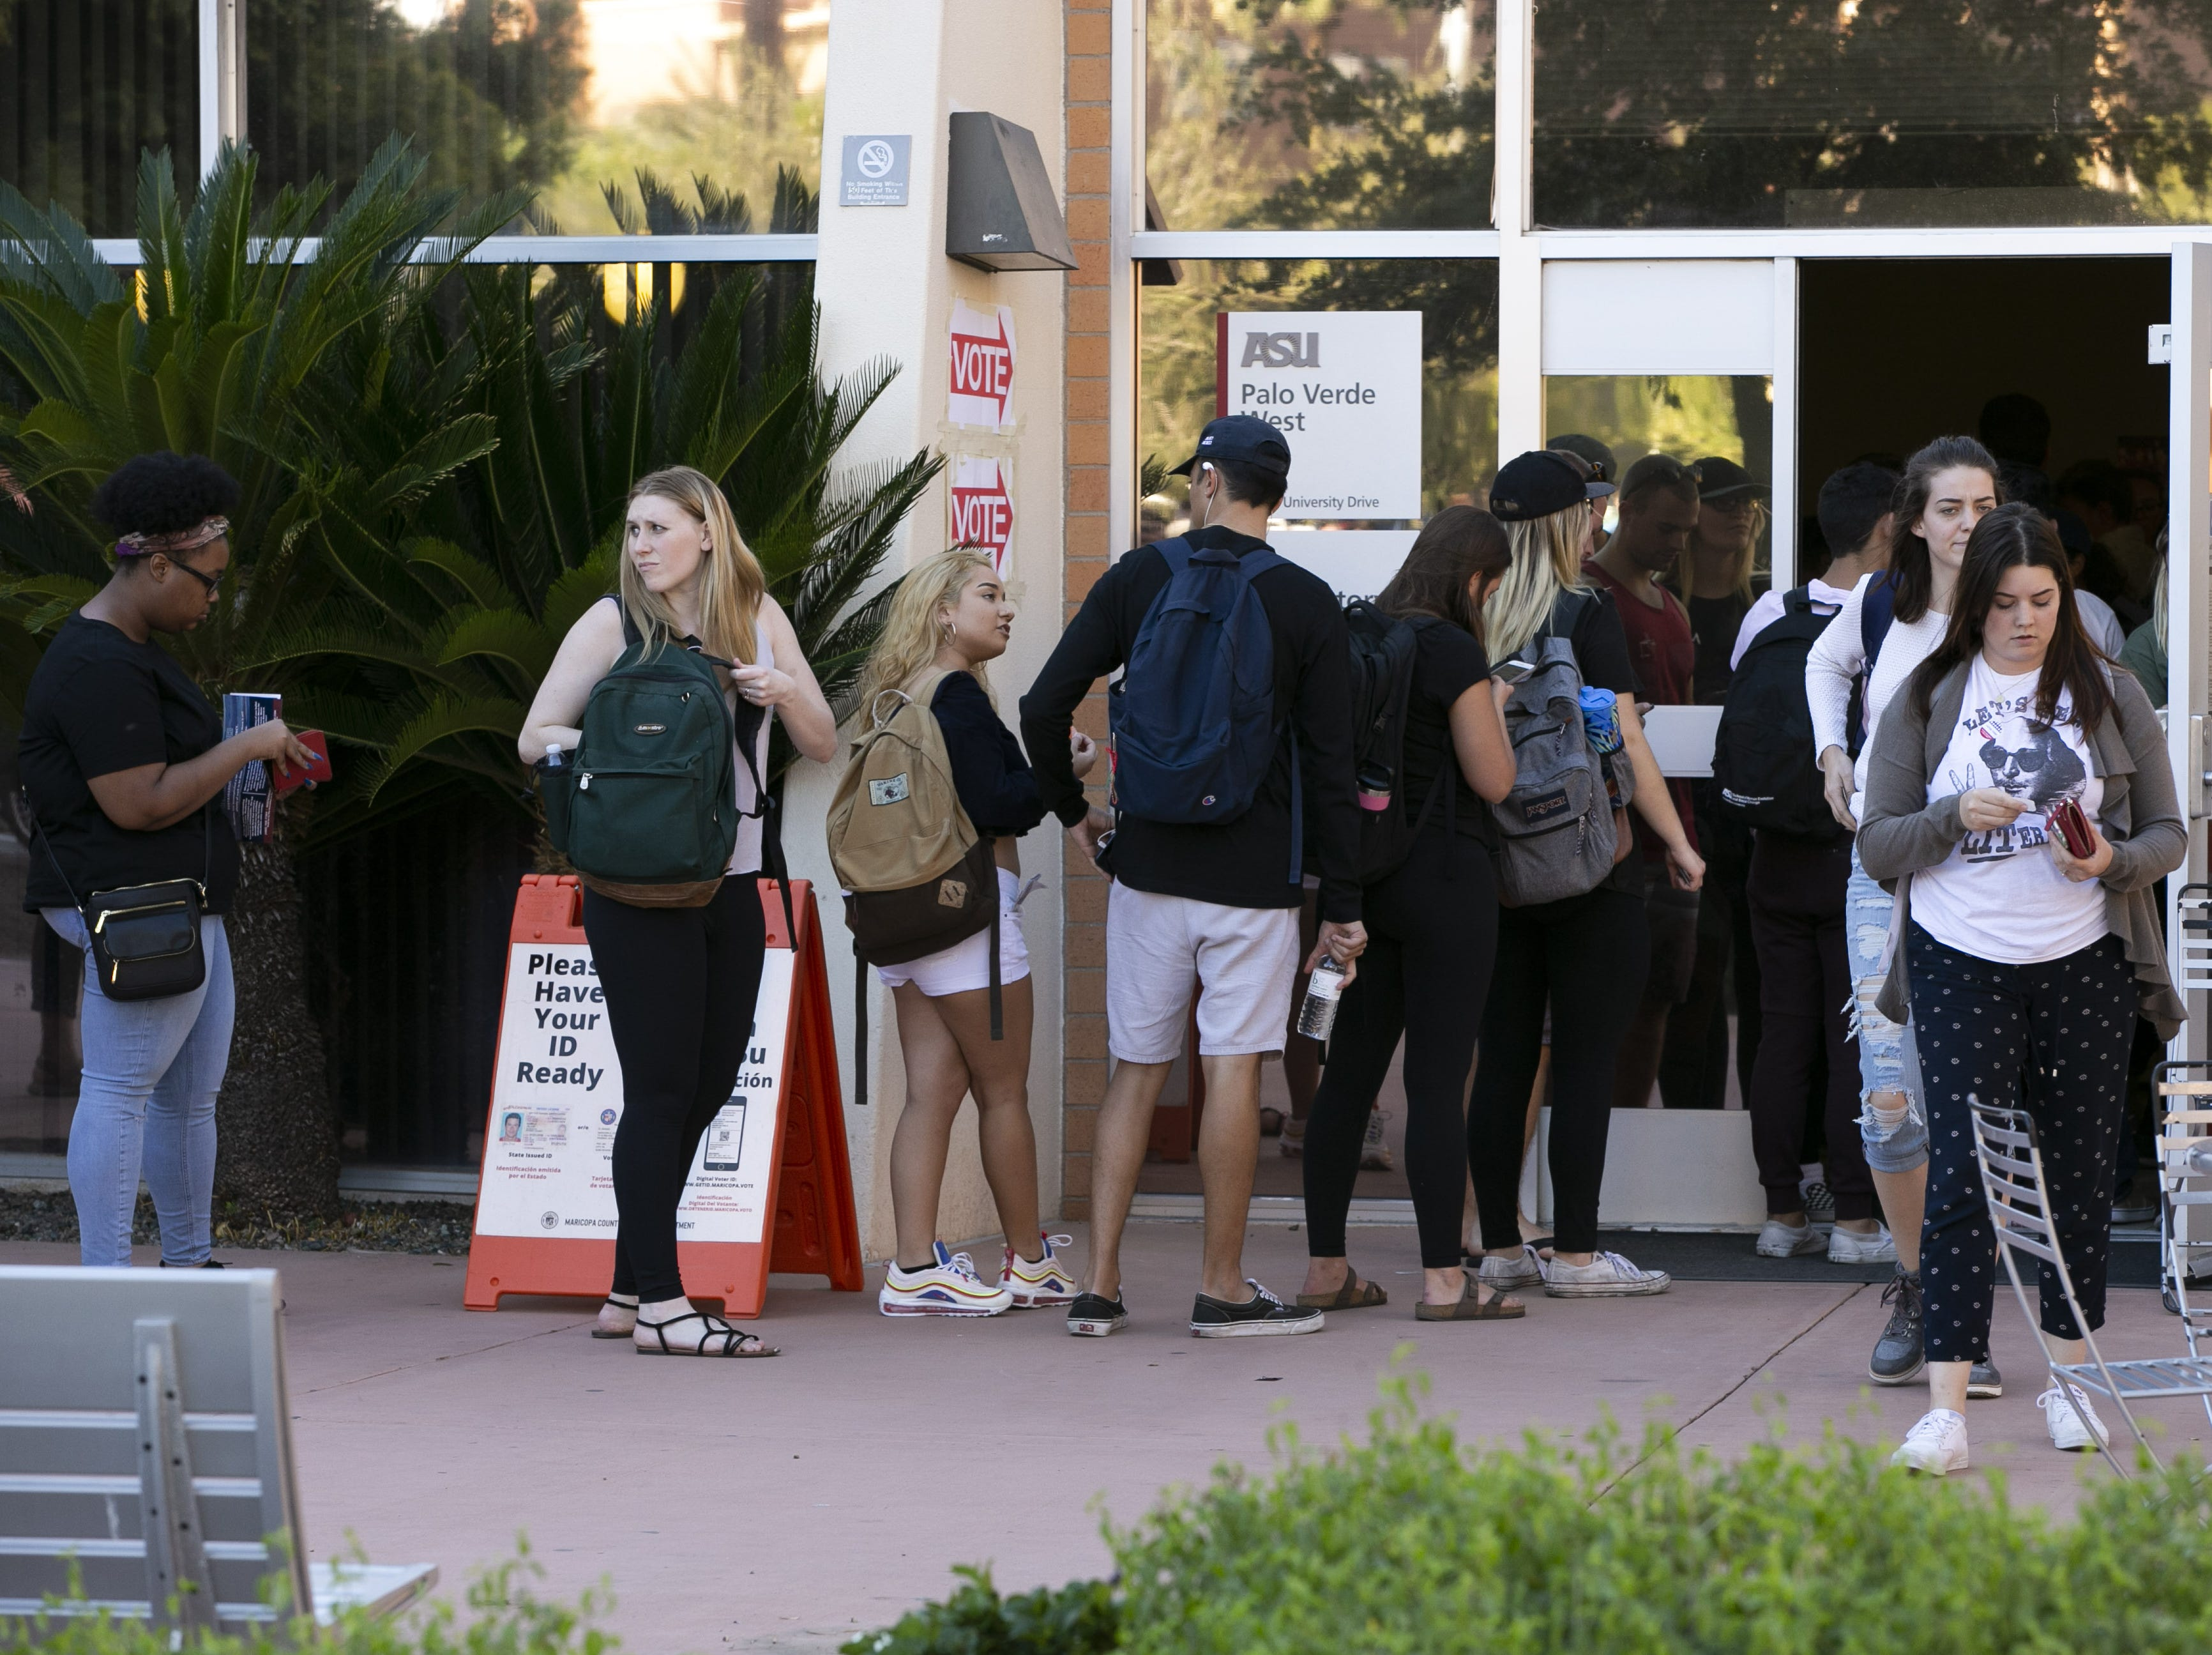 Arizona State University students wait in line to vote at the polling place at ASU's Tempe campus on Nov. 6, 2018.